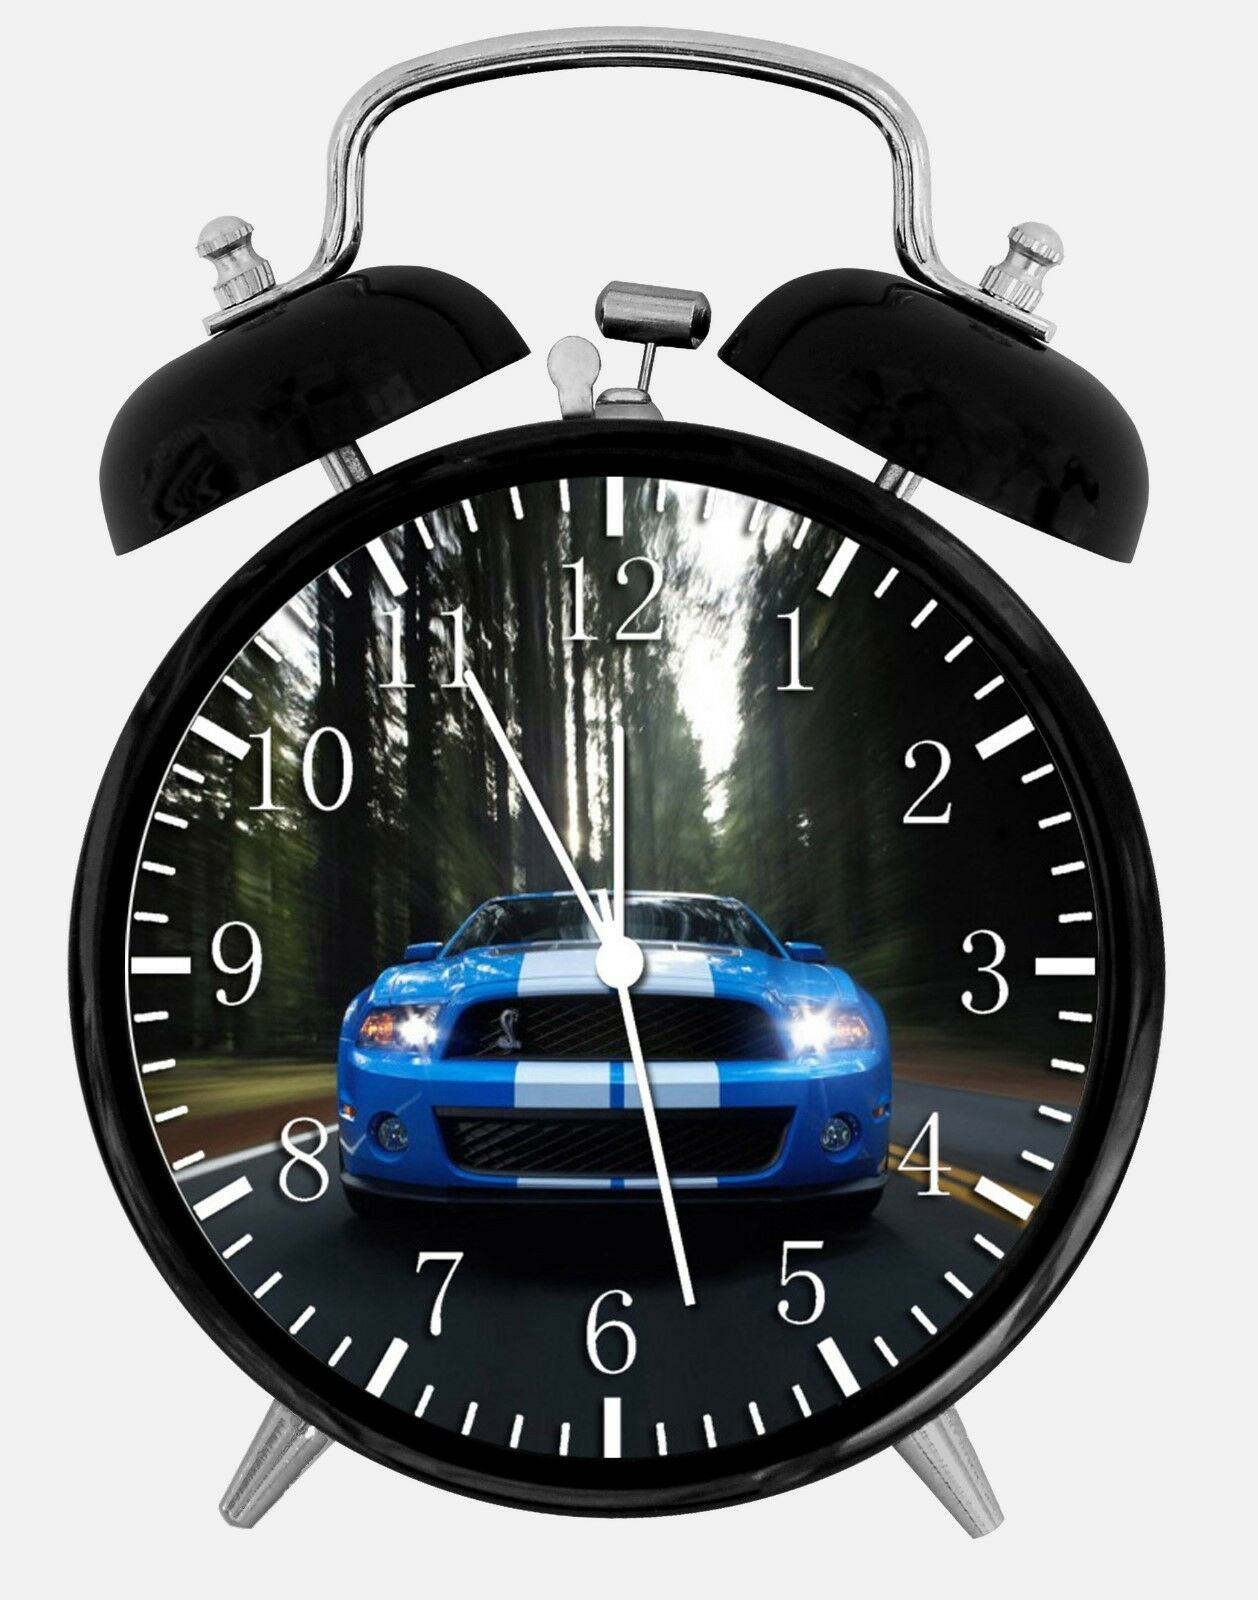 "Mustang Shelby GT Alarm Desk Clock 3.75"" Home or Office Decor W201 Nice For Gift"